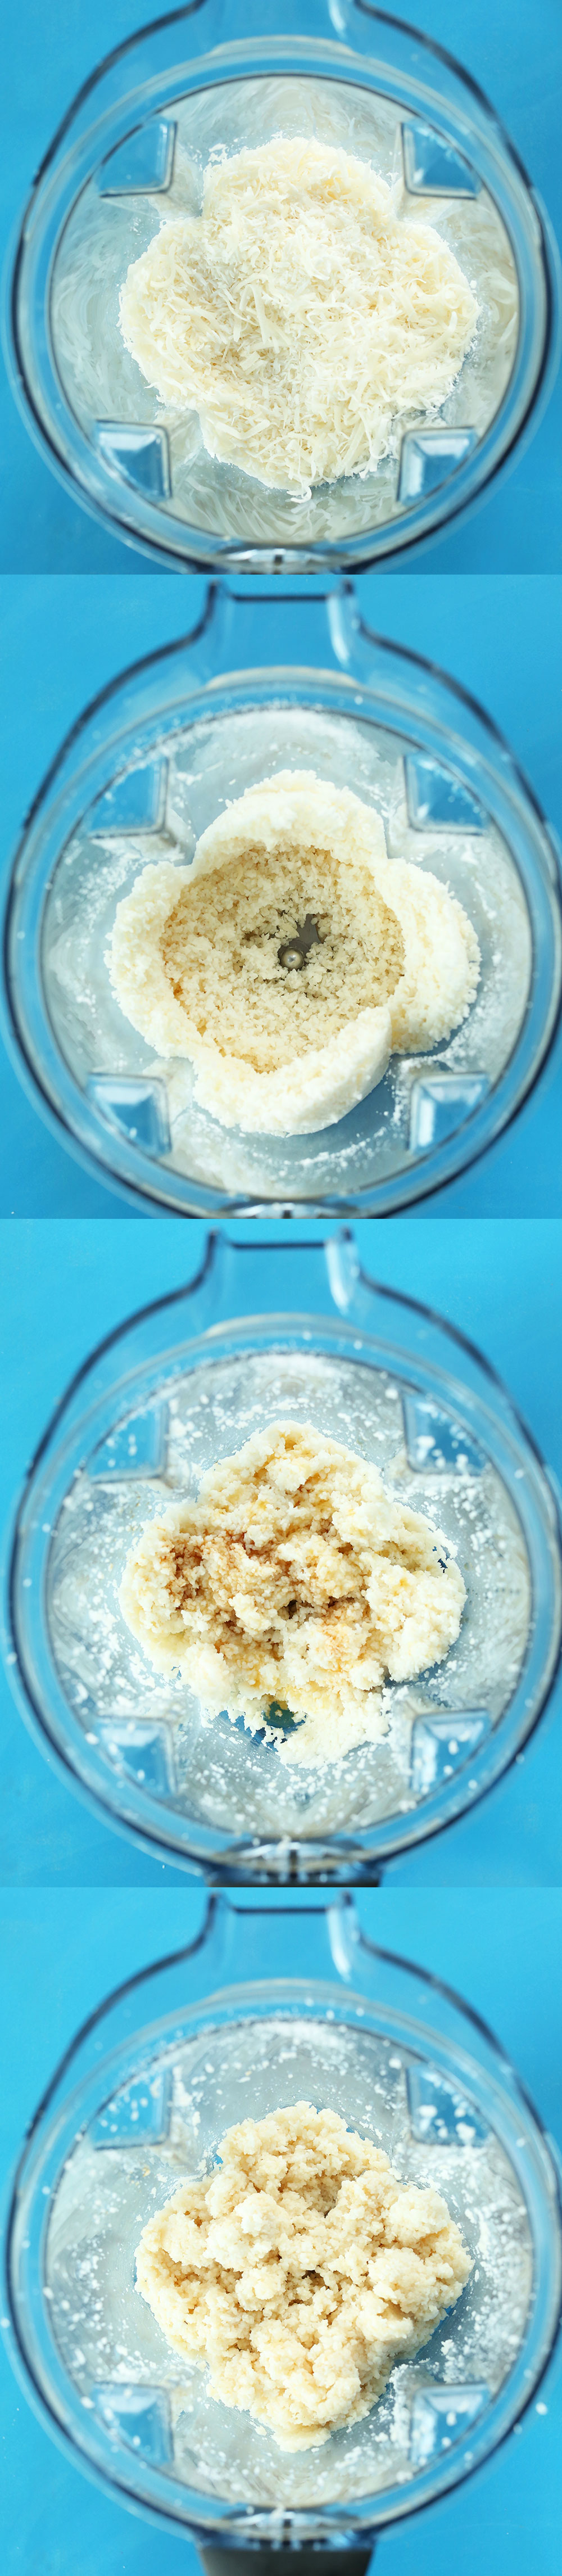 Photos showing How to Make Vegan Coconut Macaroons